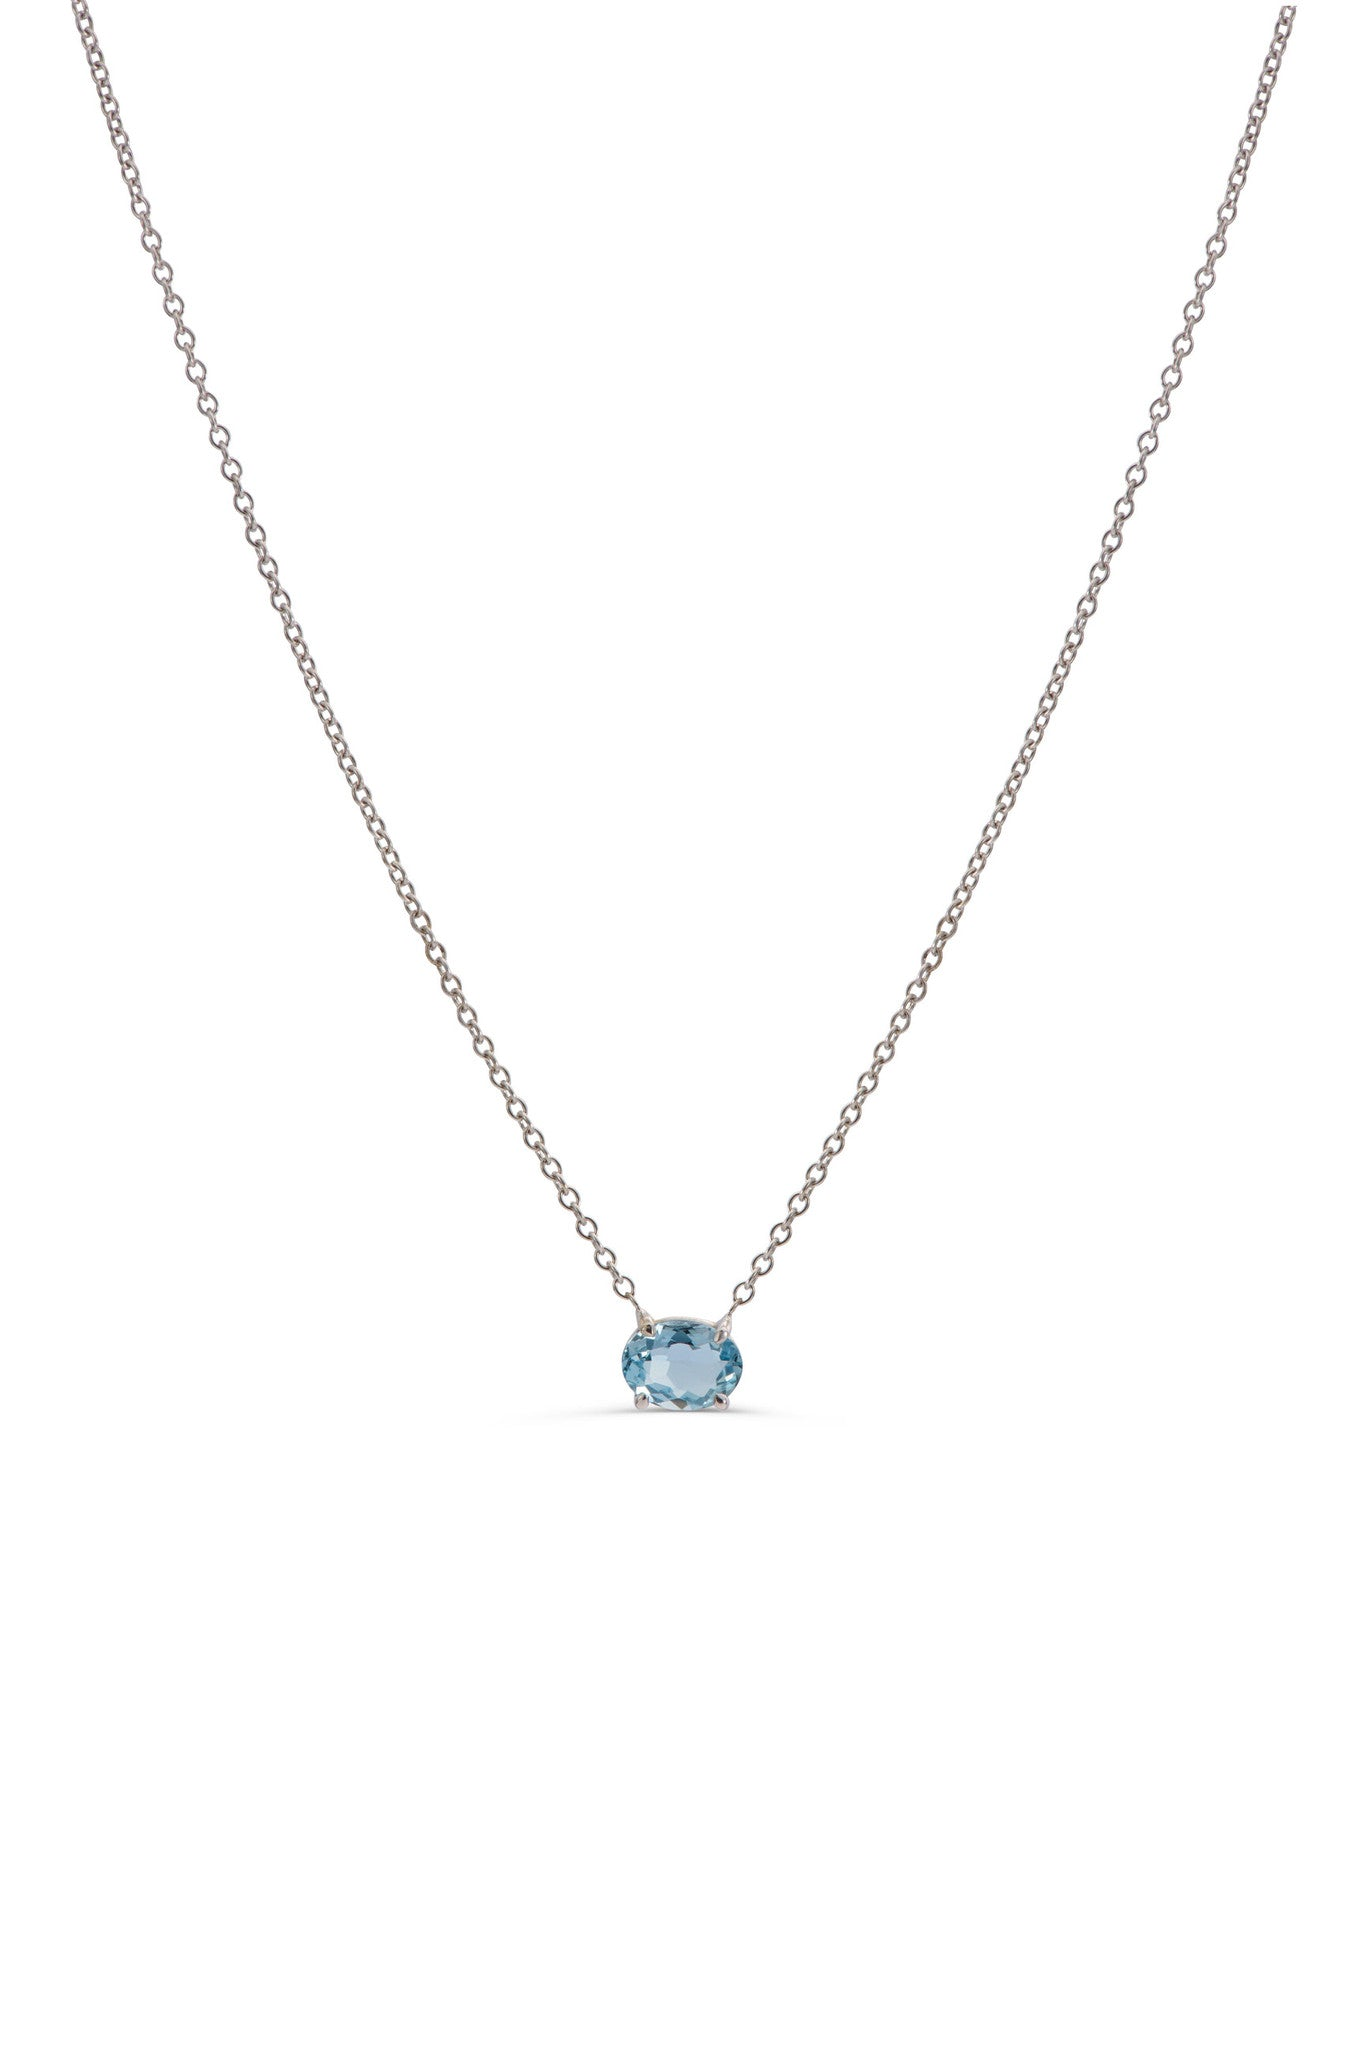 lewis pendant main online buyewa ewa johnlewis aquamarine white pdp com gold pear rsp at john